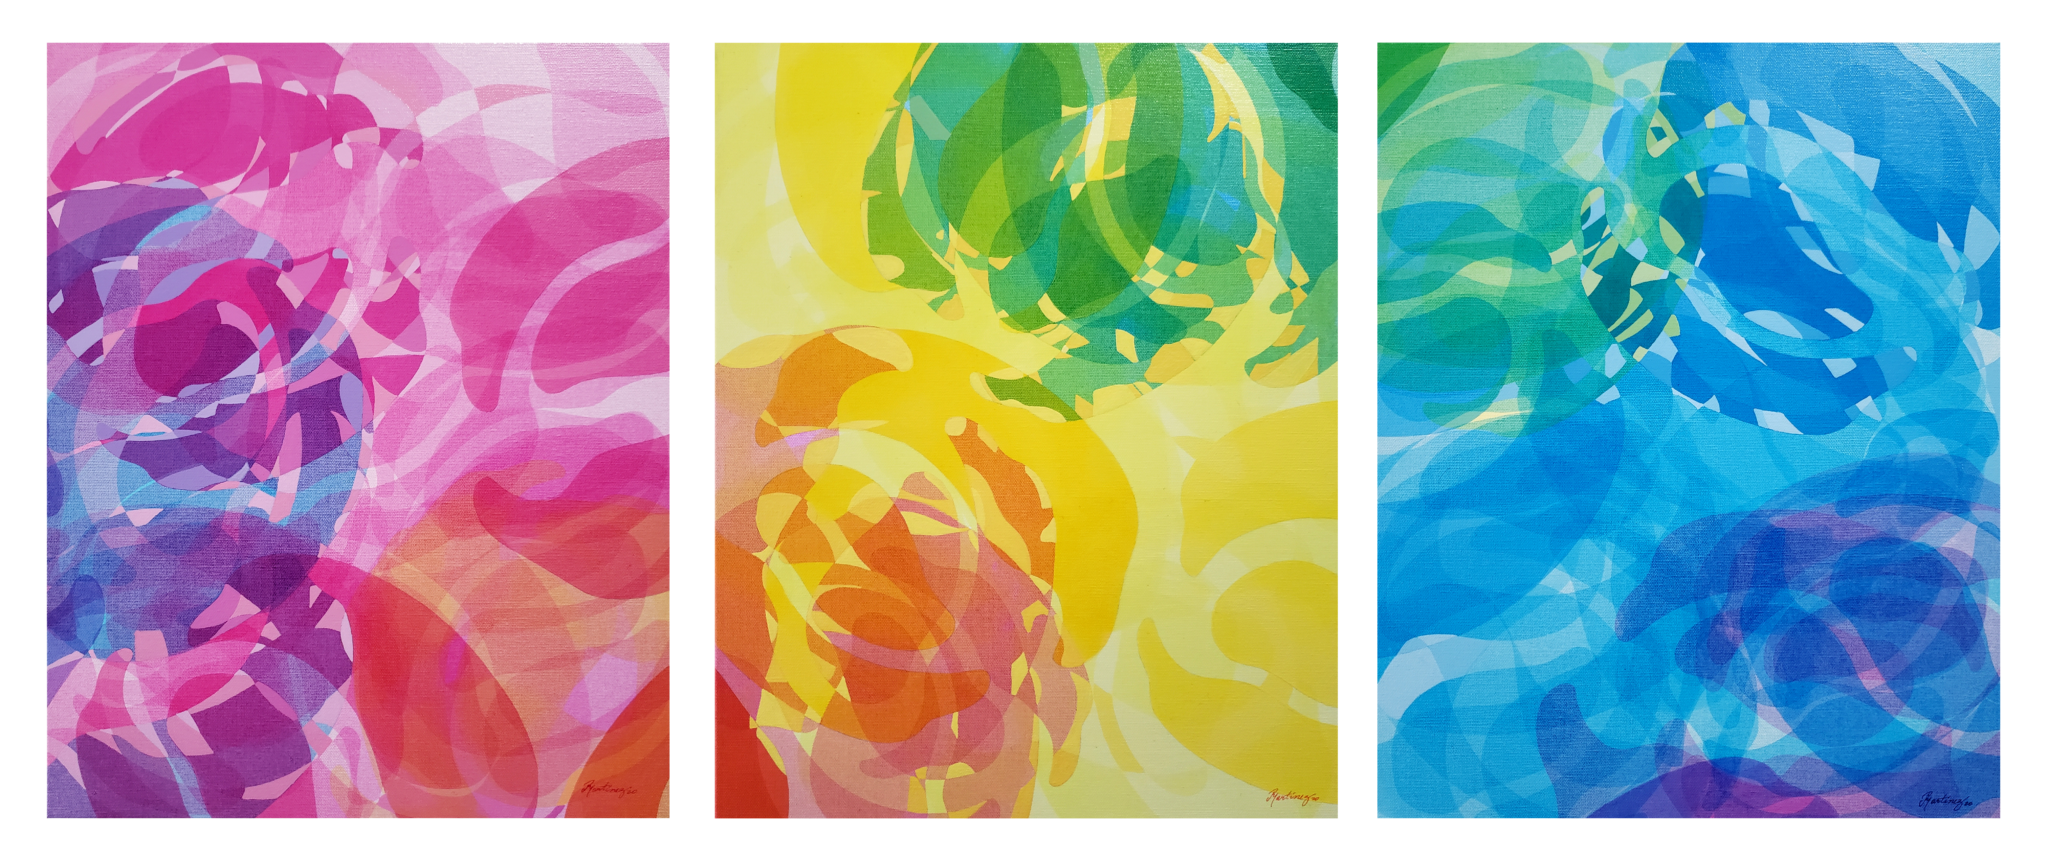 Colors in the wind discover (Search)    ///    Serigraphy and acrylic paint on canvas - 20 x 48 x 1.5 in (20 x 16 x 1.5 in each) - 2020